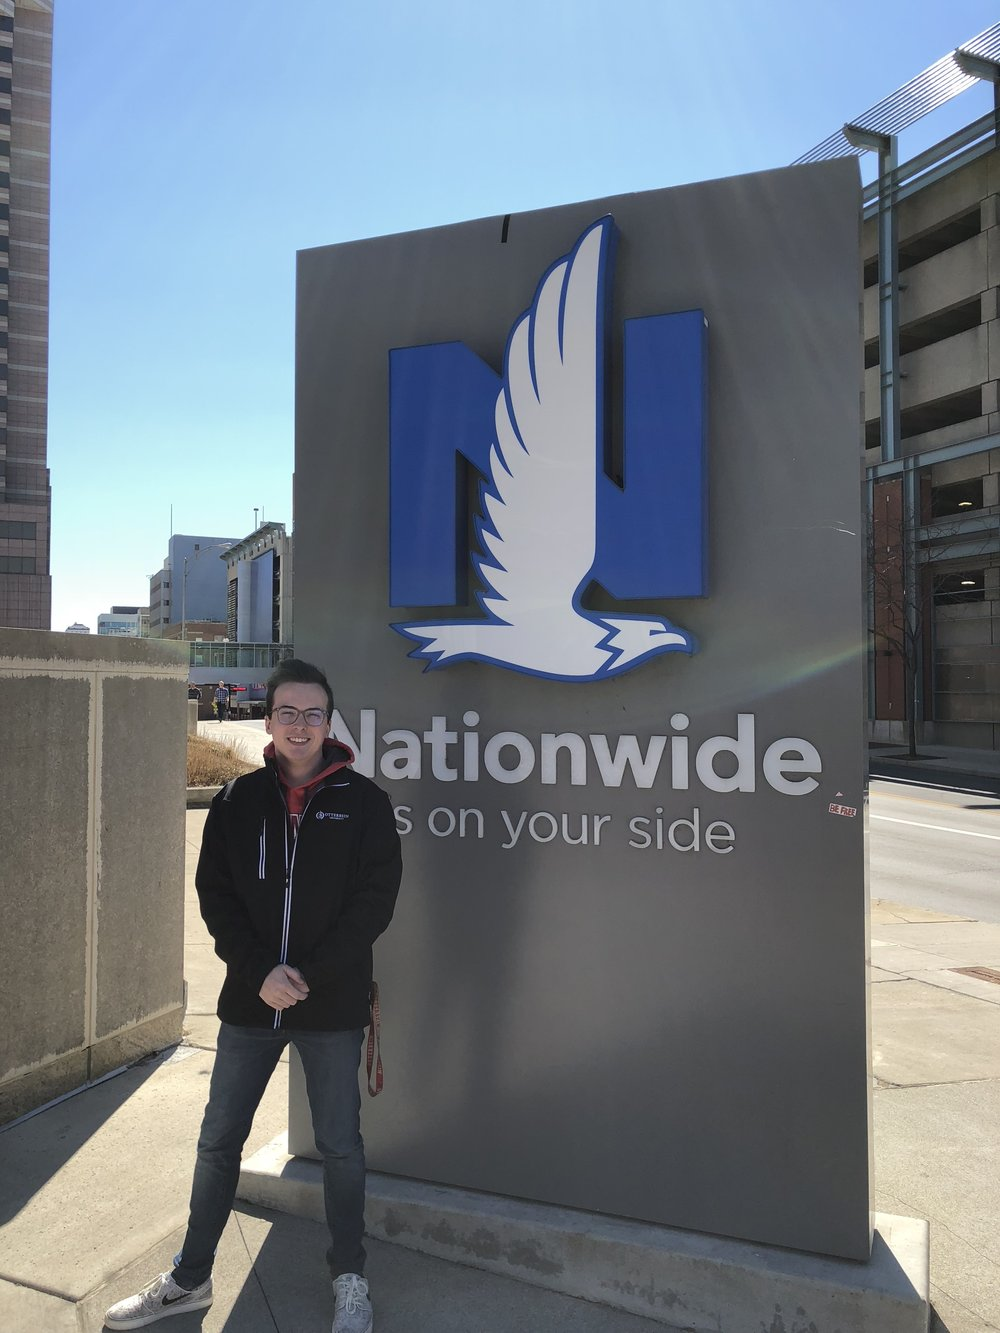 Nationwide is a Fortune 100 company headquartered in Columbus, Ohio